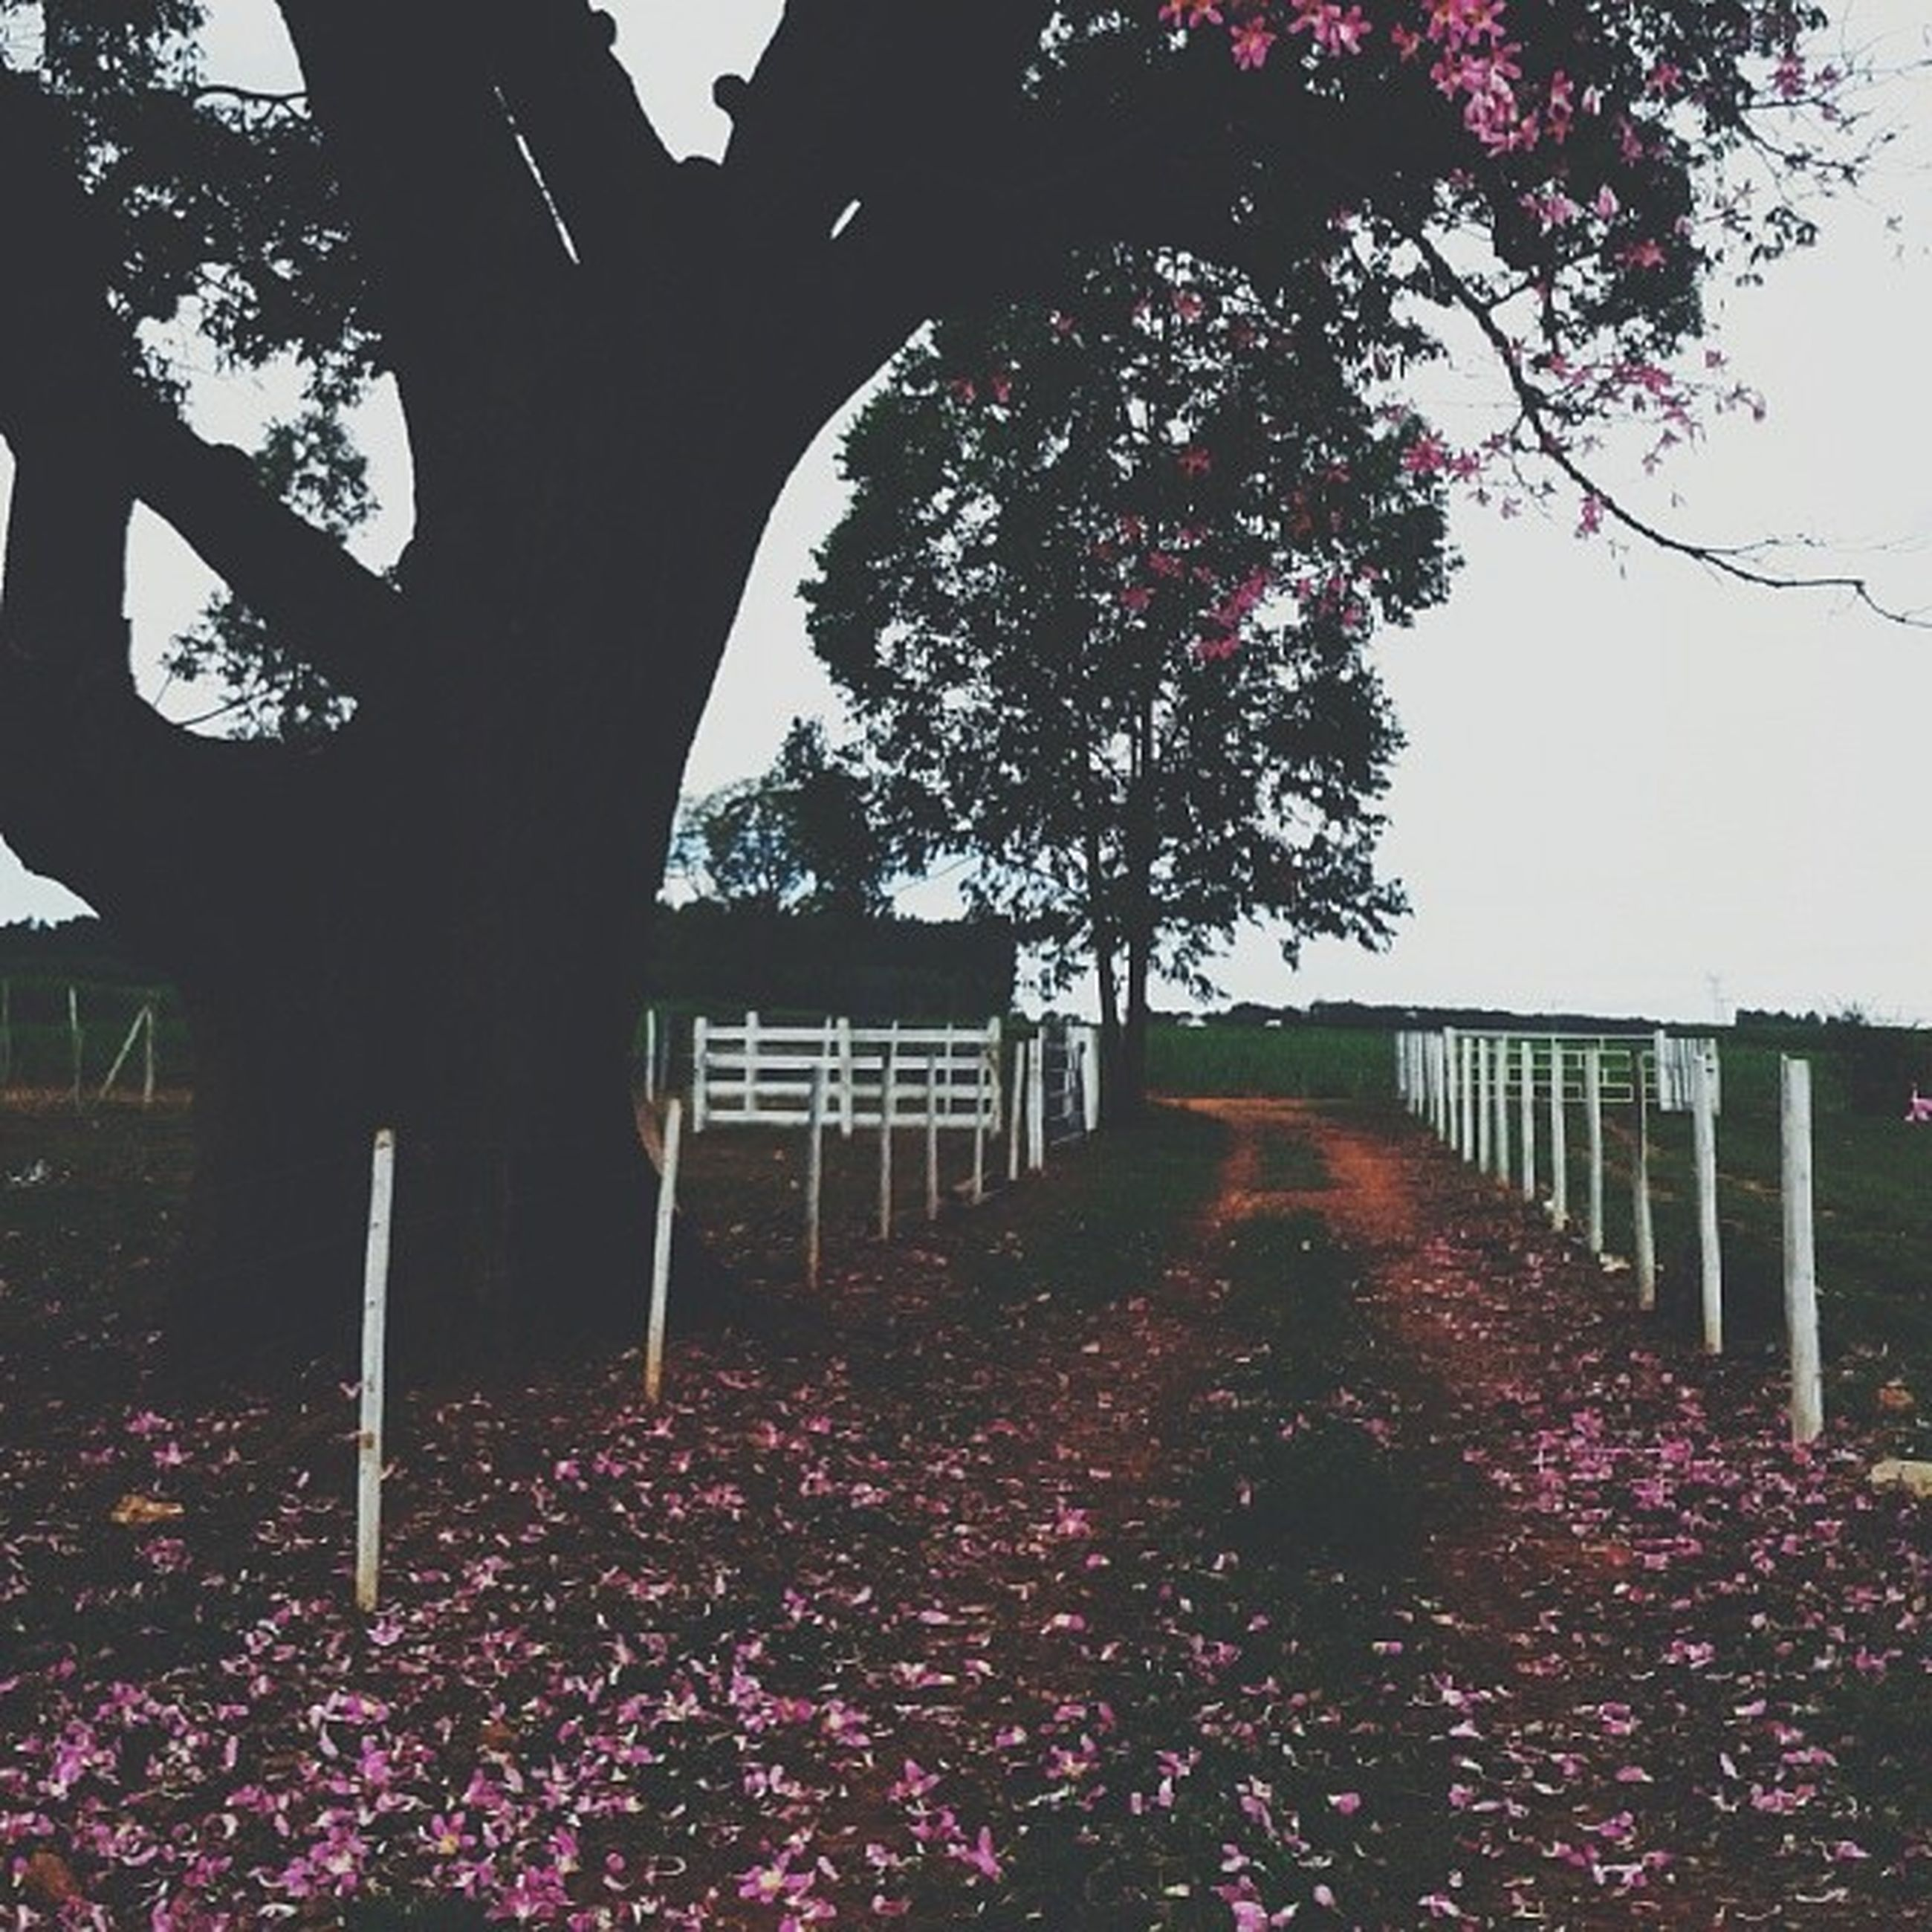 tree, flower, growth, beauty in nature, nature, branch, park - man made space, tranquility, pink color, tranquil scene, built structure, season, freshness, scenics, blossom, day, fence, outdoors, park, architecture